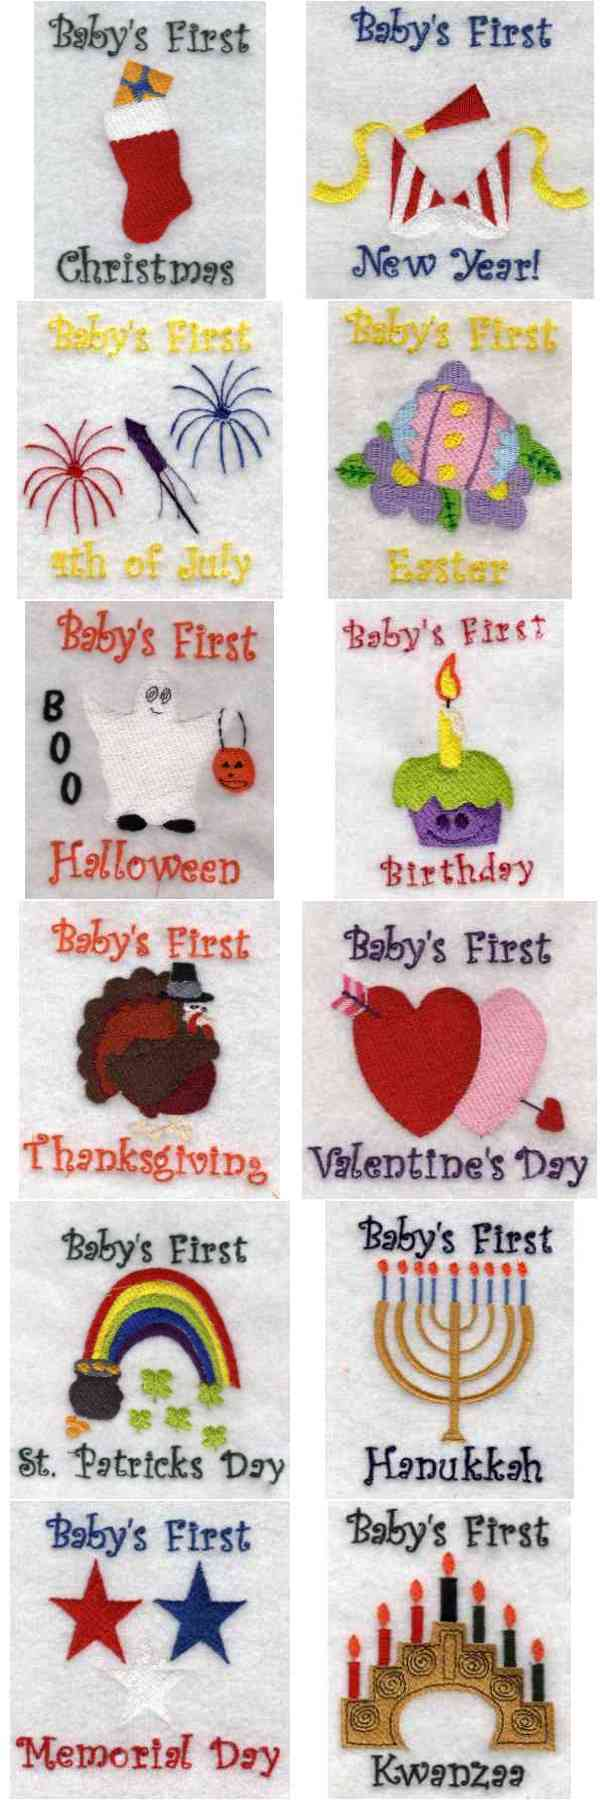 Babies First Embroidery Machine Design Details